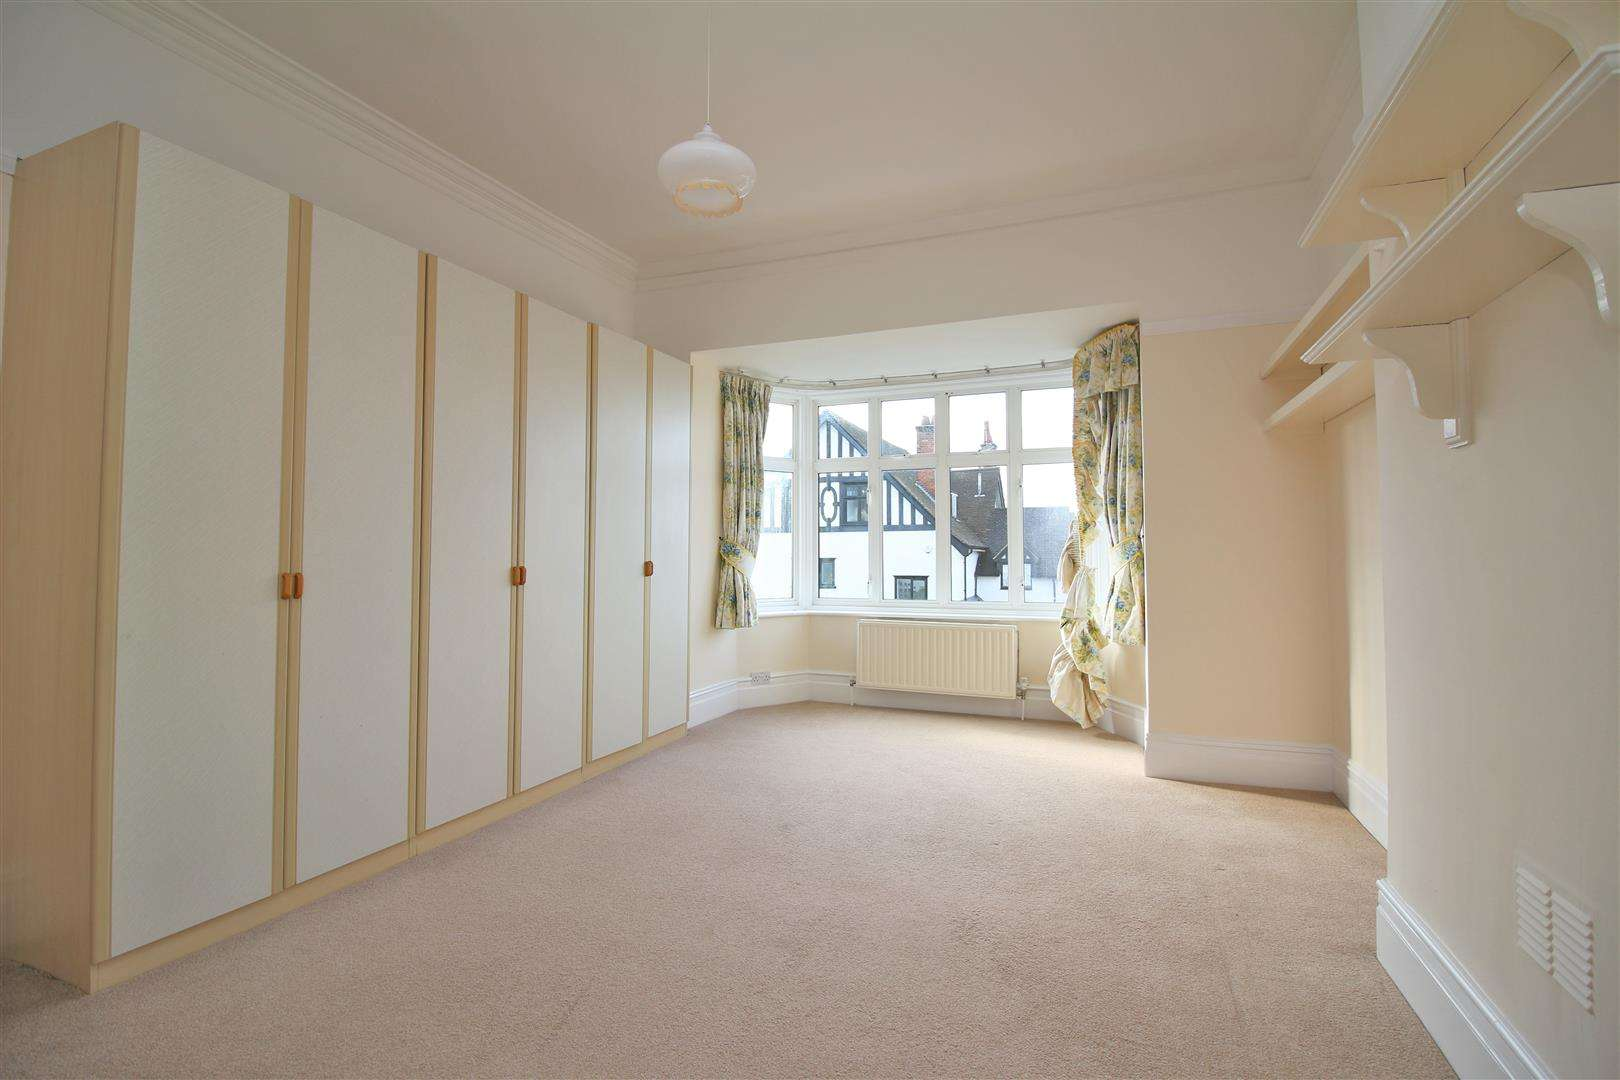 5 bed to rent - (Property Image 13)